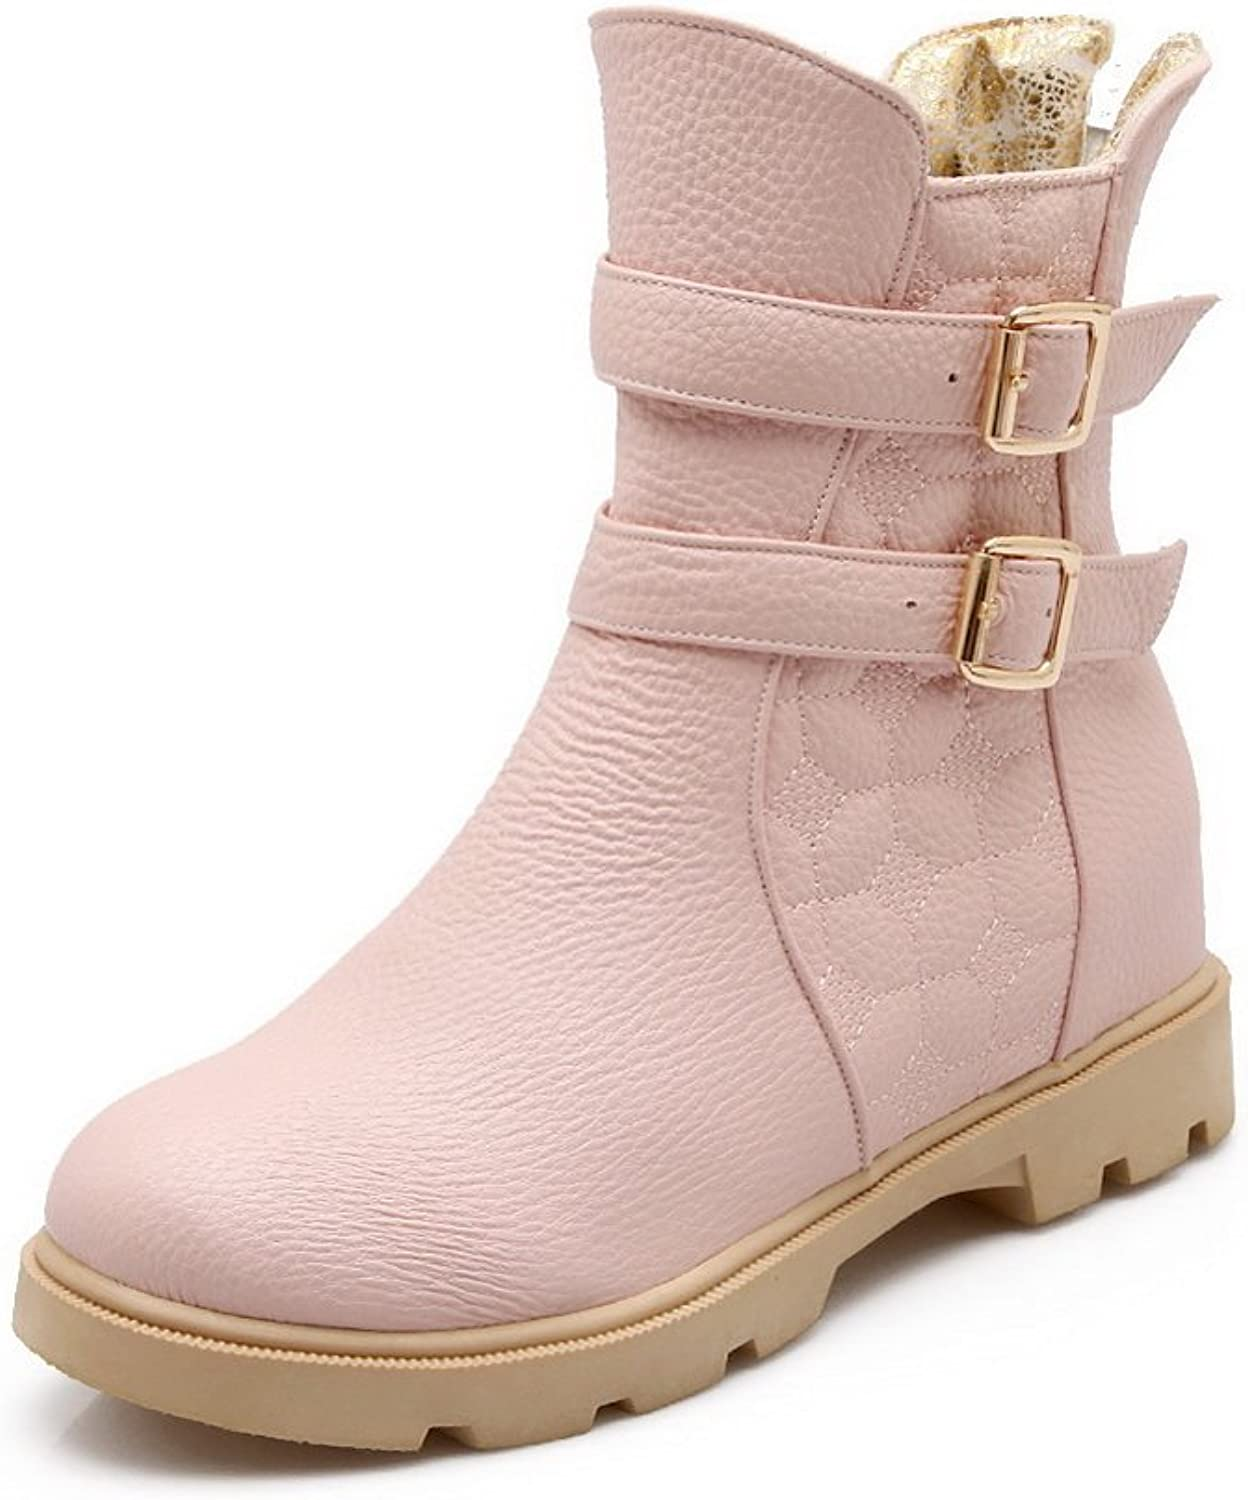 1TO9 Womens Boots Low-Top Zip Ankle-Wrap No-Heel Solid Warm Lining Rubber Waterproof Manmade Smooth Leather Bootie Urethane Boots MNS02607